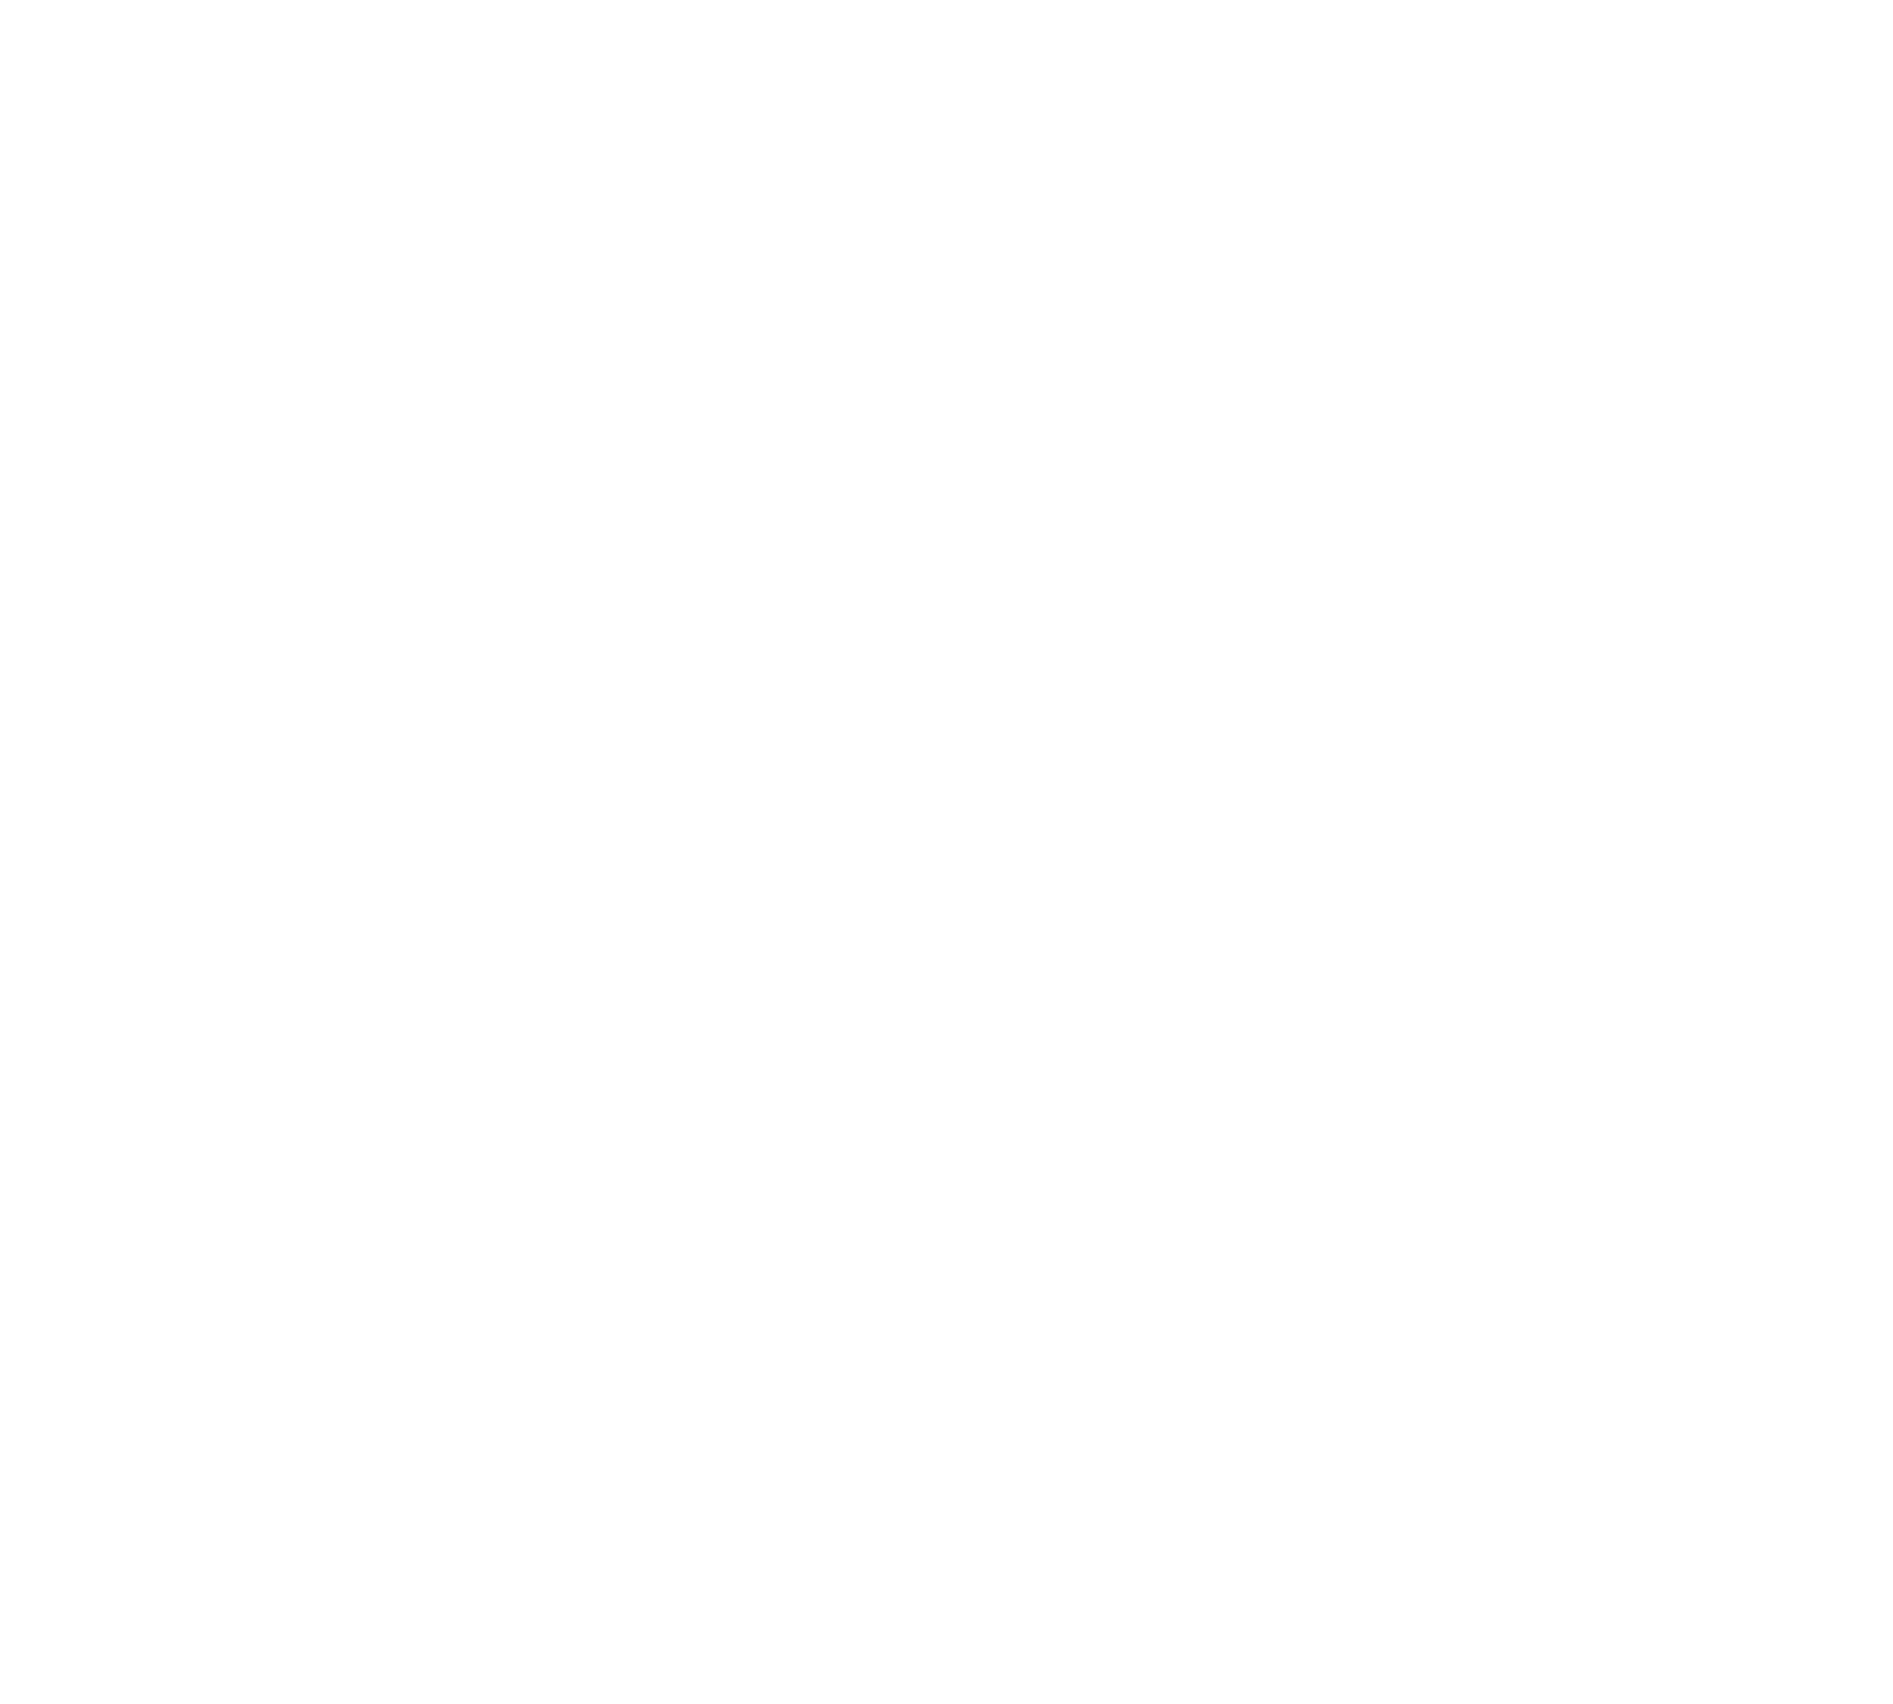 Aspen Views, Crafted for You.